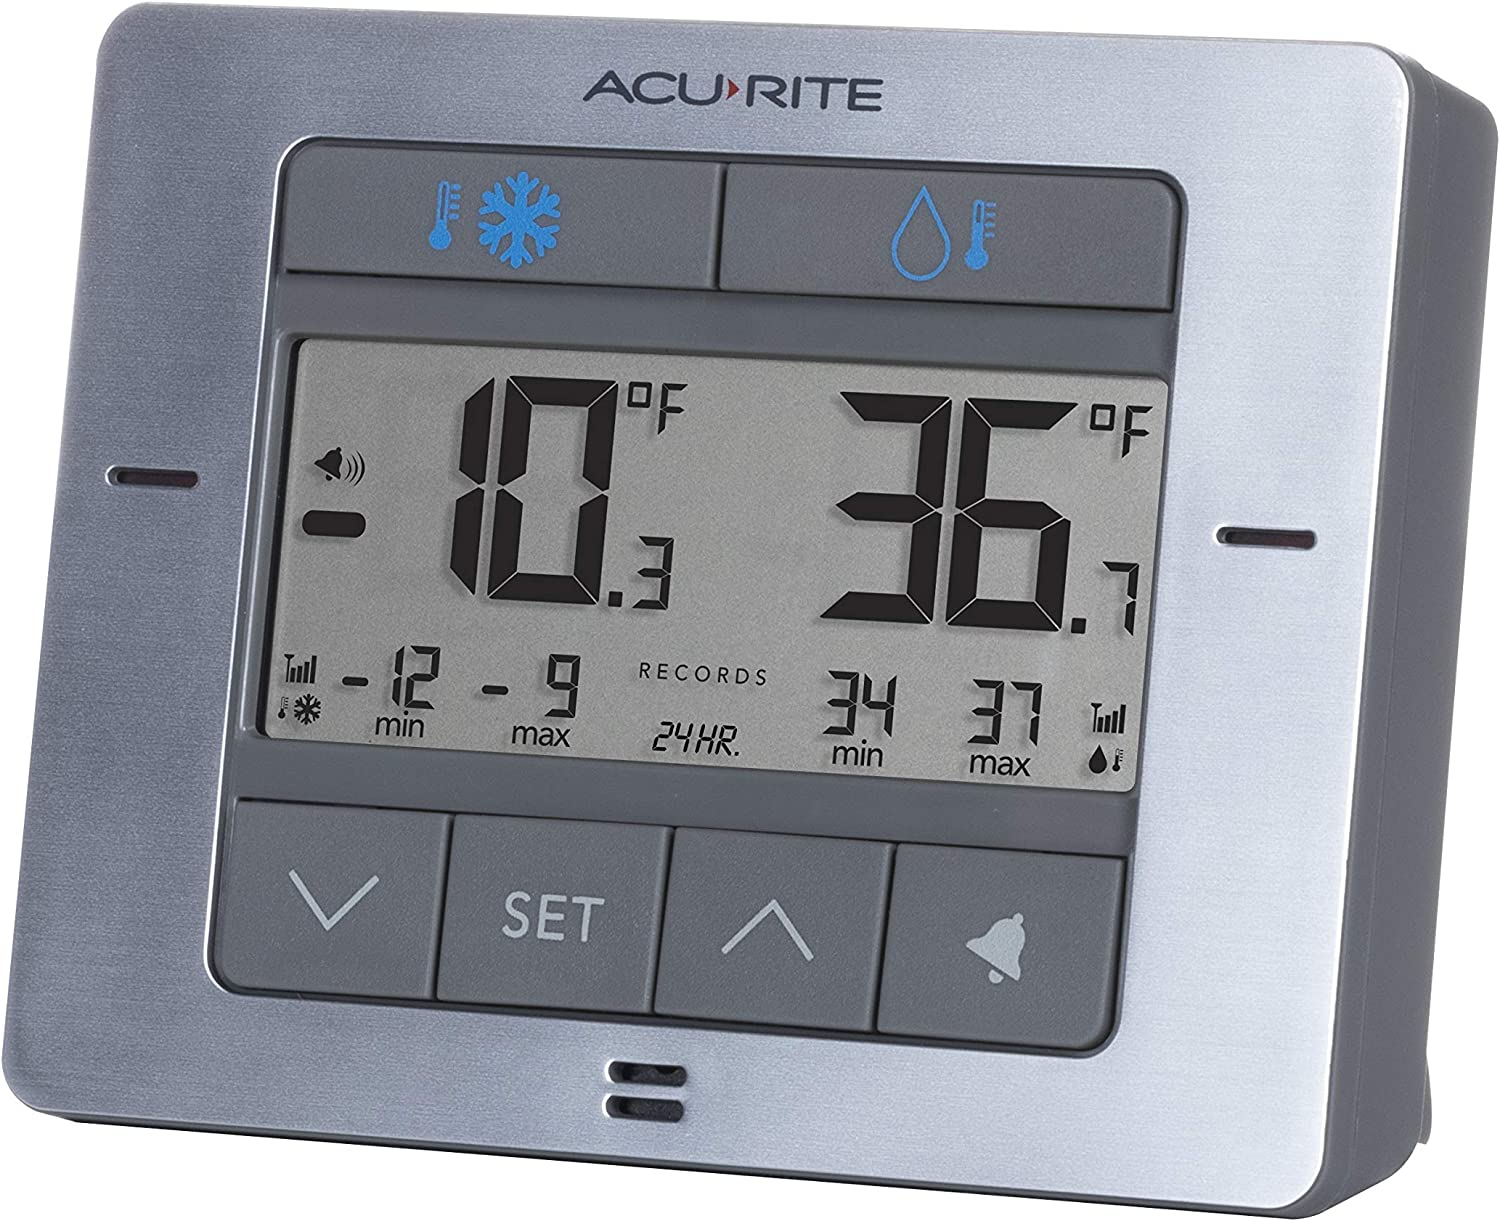 4.25 x 3.75 AcuRite 00515M fo Refrigerator Thermometer with 2 Wireless Temperature Sensors /& Customizable Alarms for Fridge /& Freezer Stainless Steel Finish